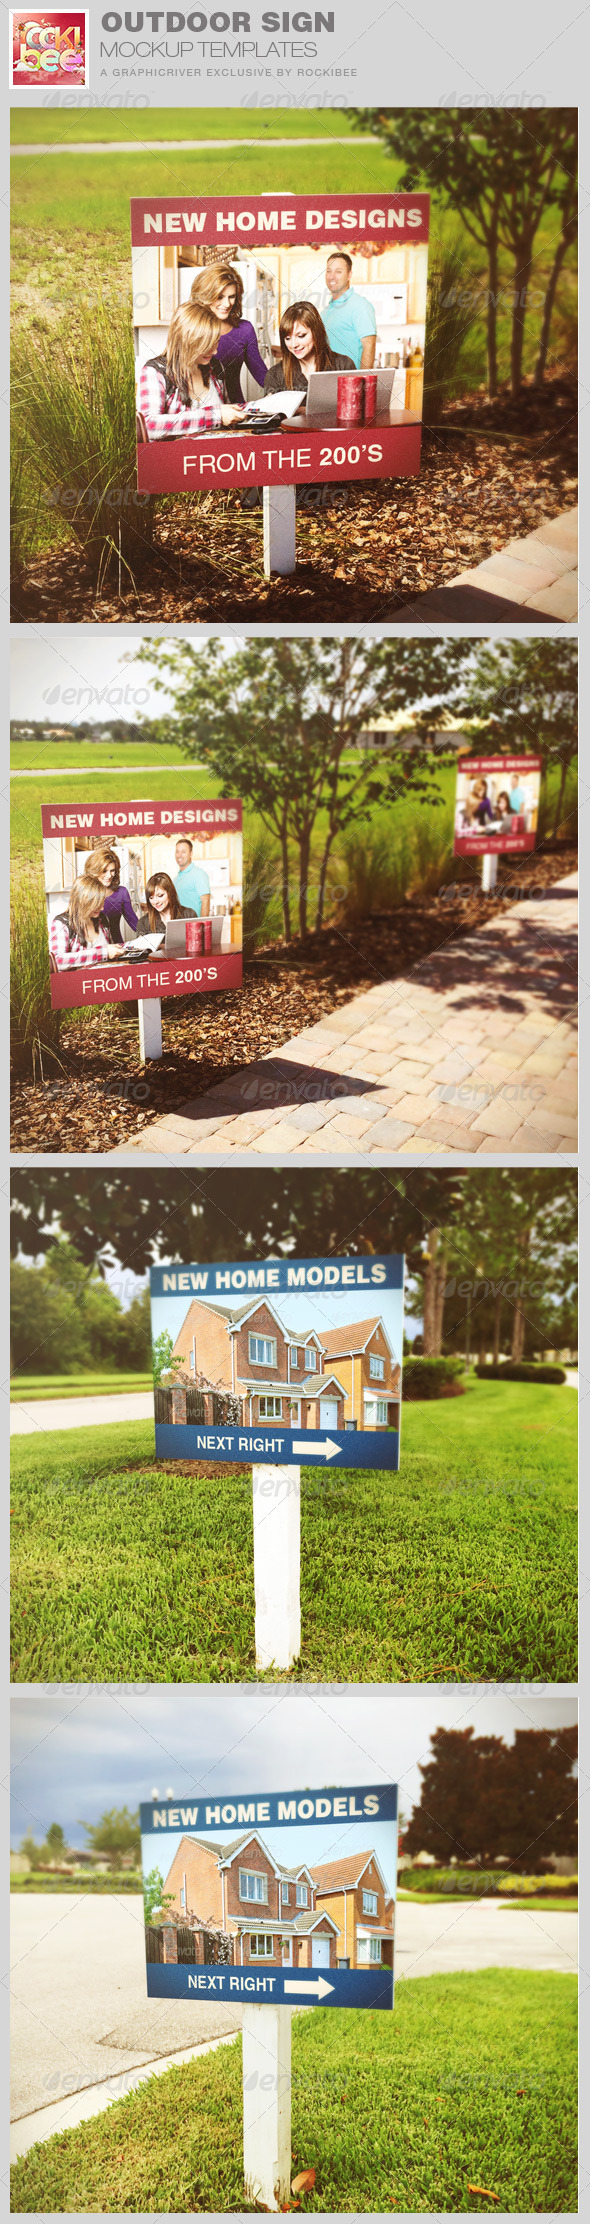 GraphicRiver Outdoor Sign Mockup Templates 8416734